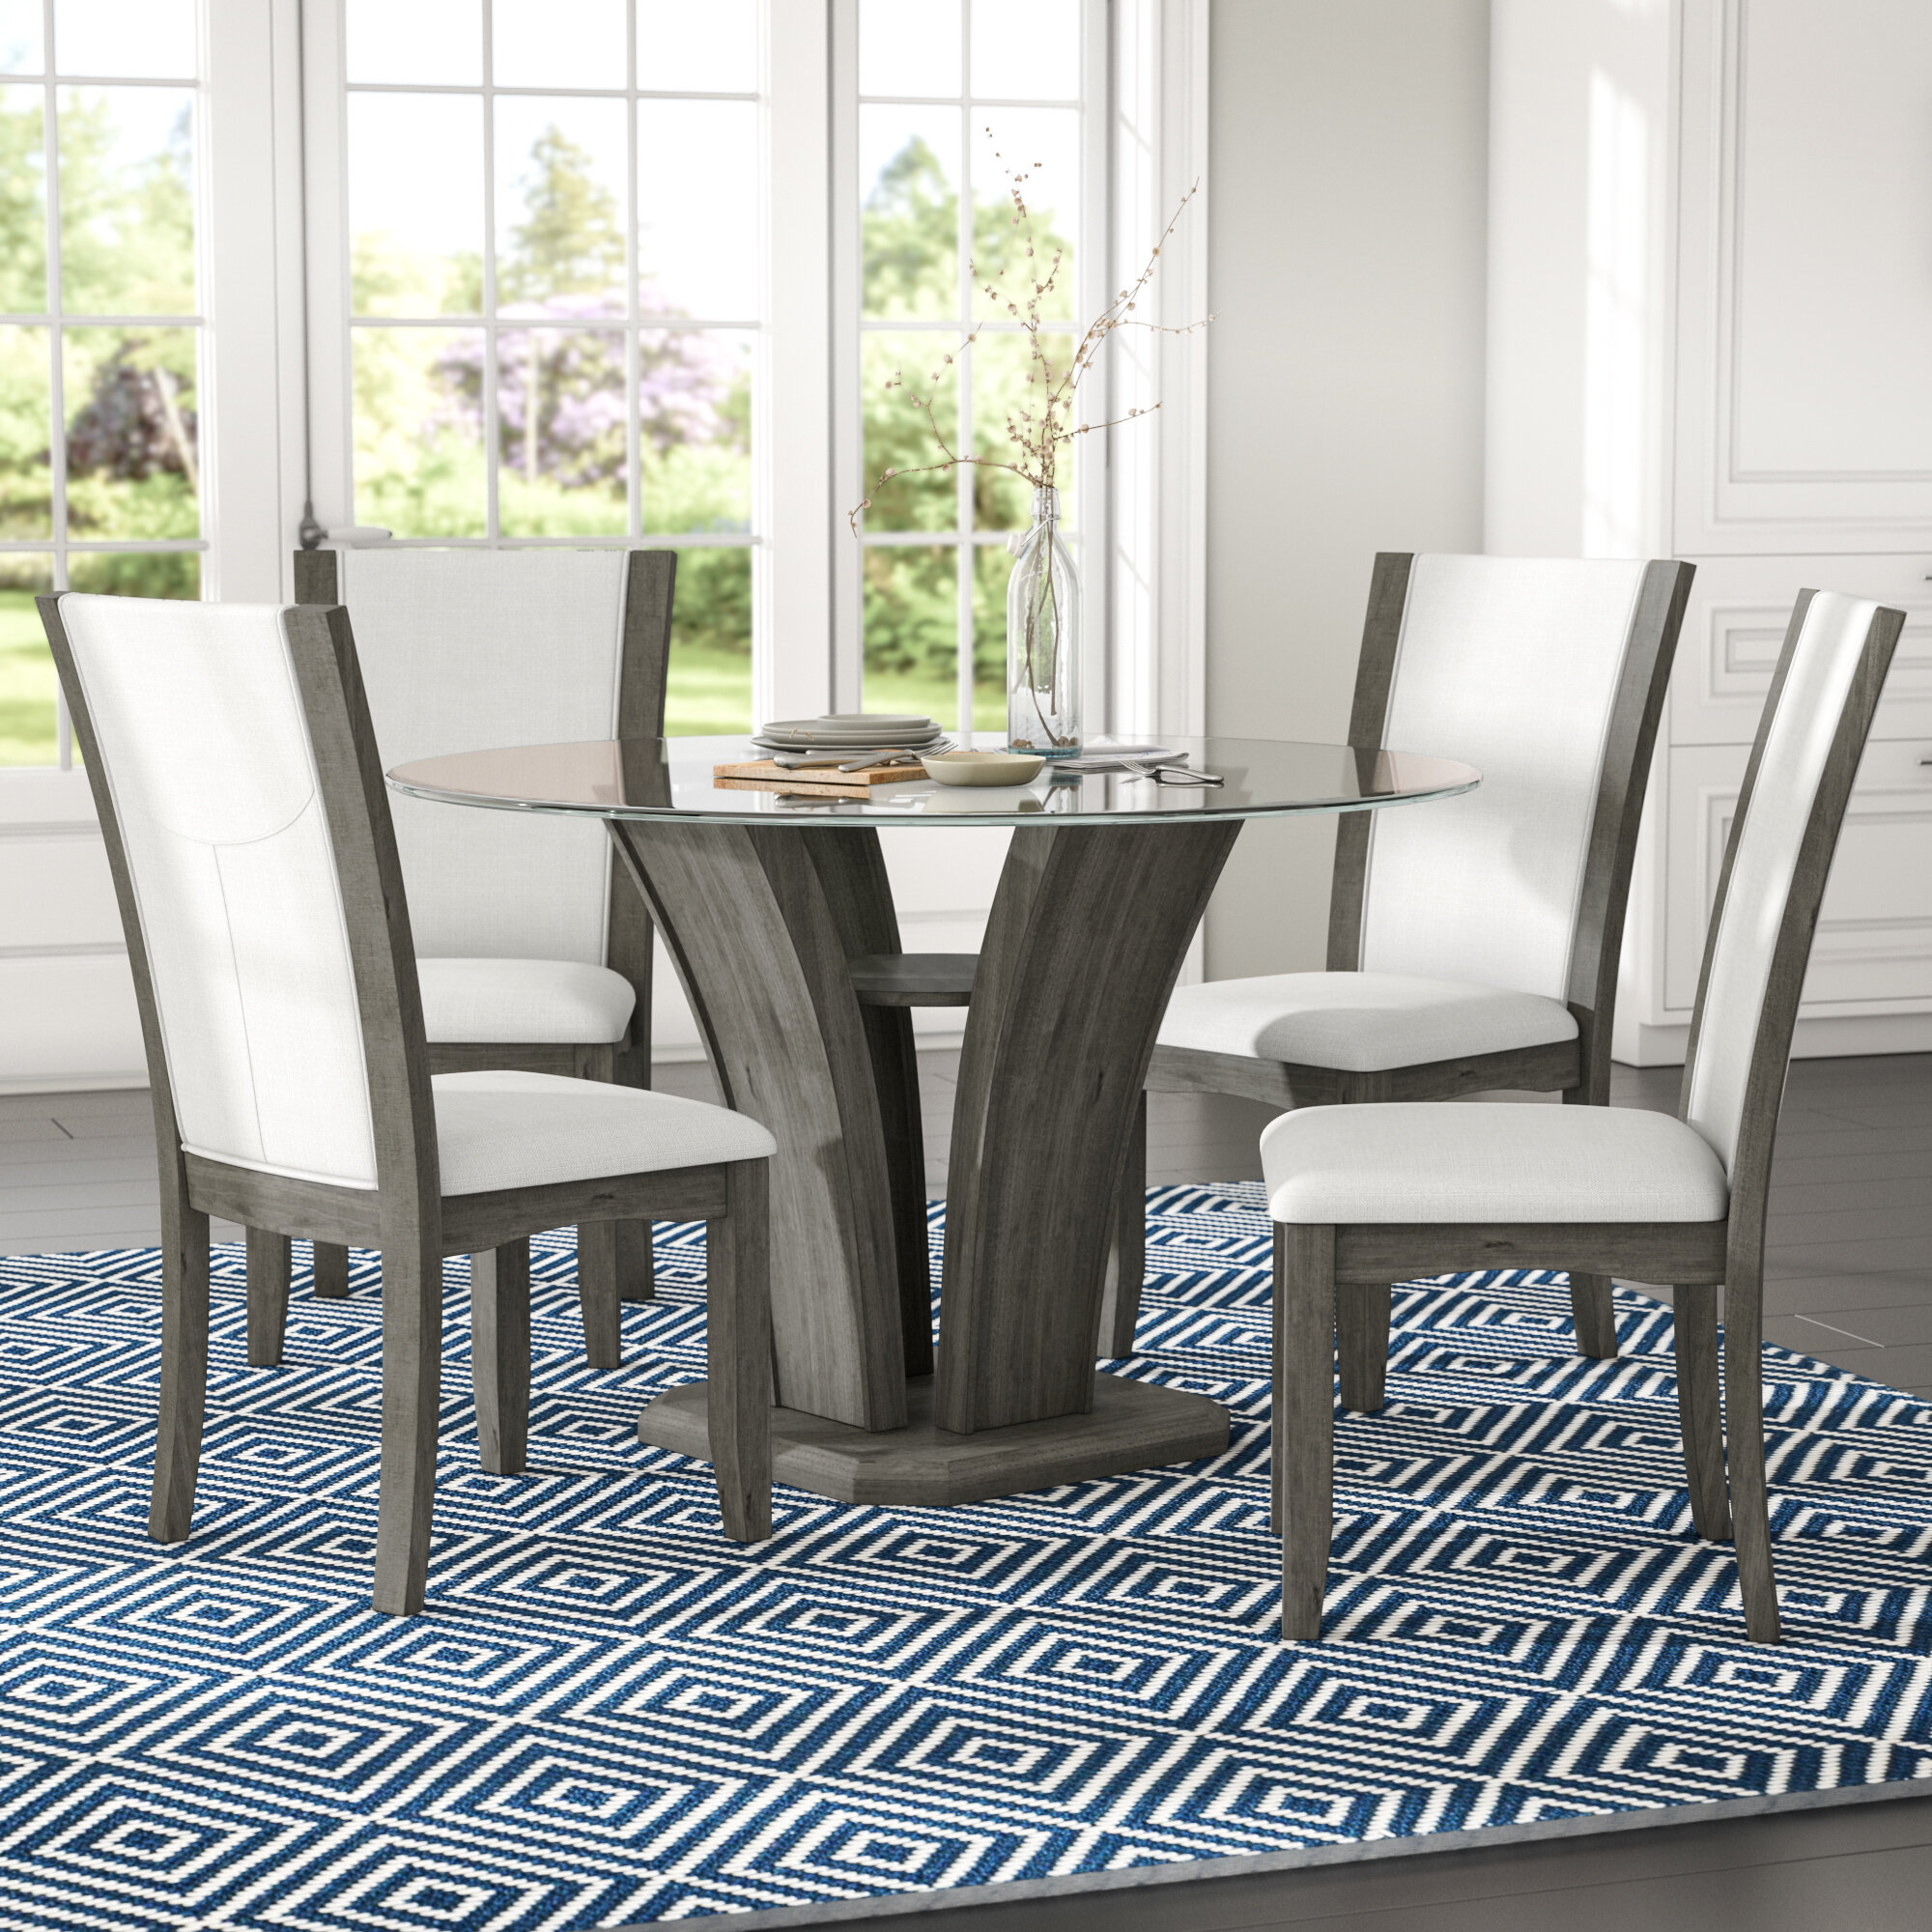 Brayden Studio Kangas 5 Piece Glass Top Dining Set Reviews Wayfair - Glass-topped-dining-room-tables